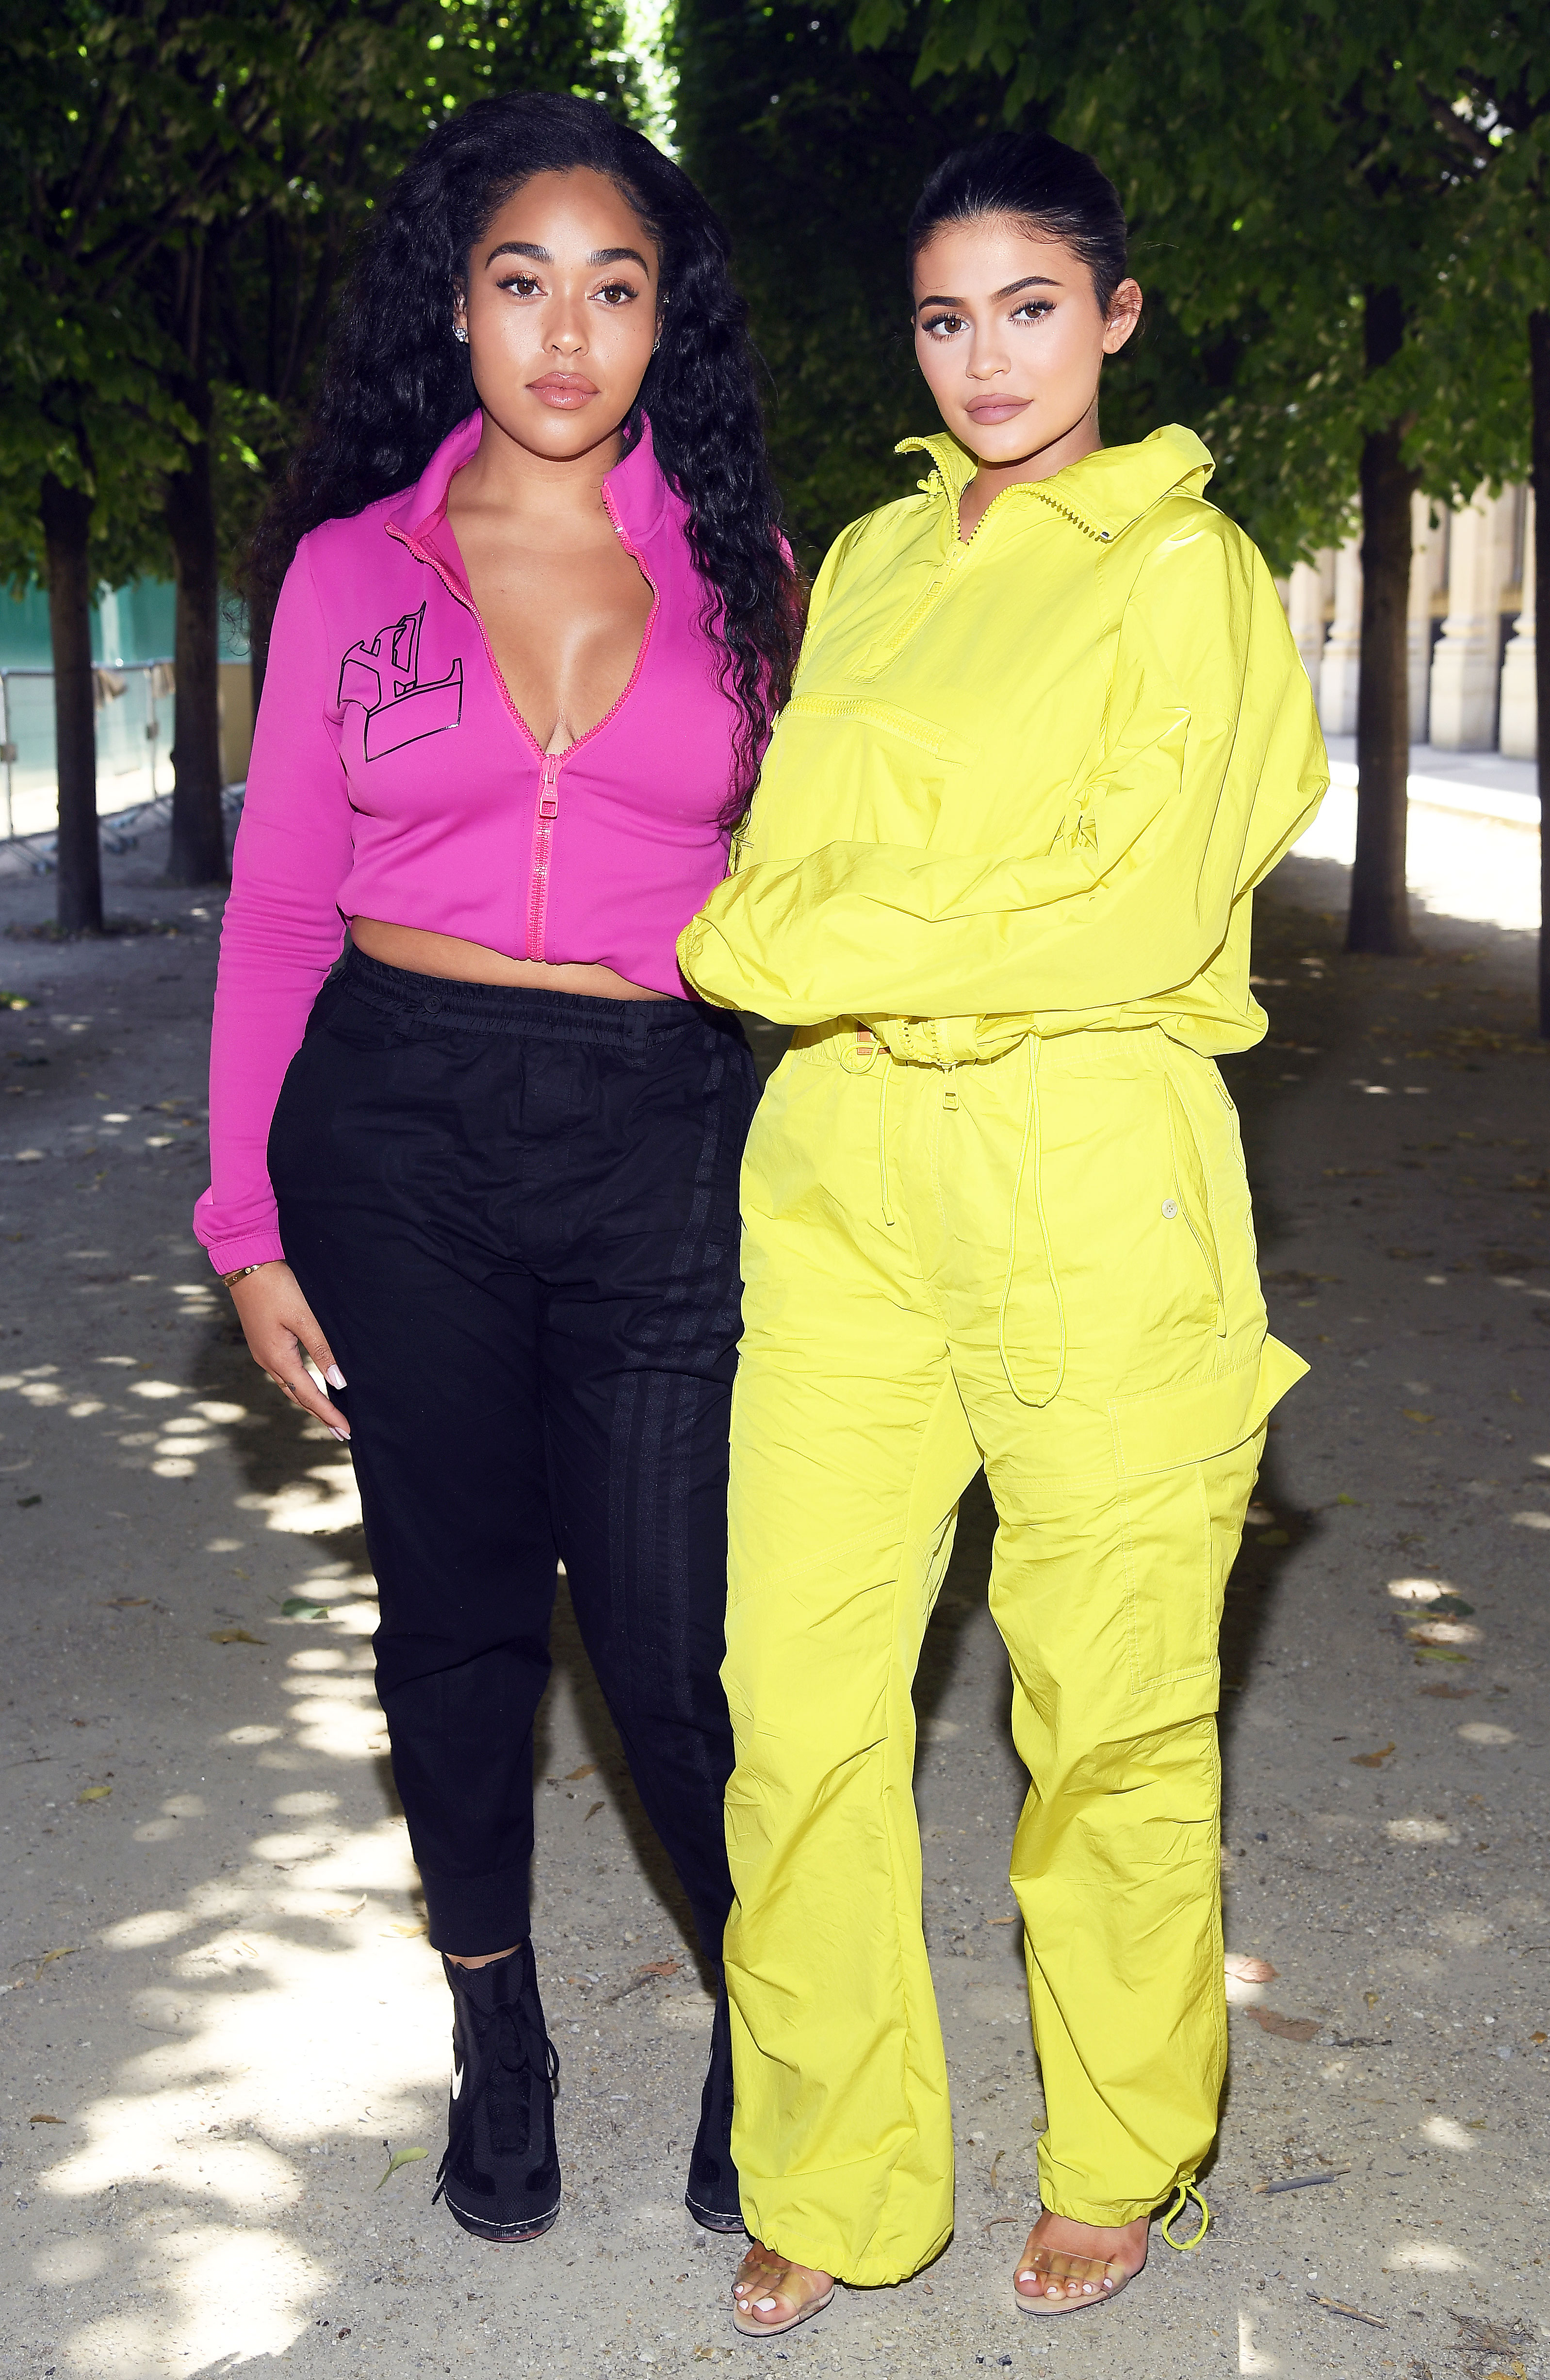 Jordyn Woods and Kylie Jenner - After hanging out at the 2018 Cannes Lions Festival to watch Travis Scott perform, the besties headed to Paris for Louis Vuitton on Thursday, June 21, in their athleisure best. Jordyn rocked a hot pink monogrammed zip-up, while Kylie shined as bright as the sun in a lemon yellow one piece.